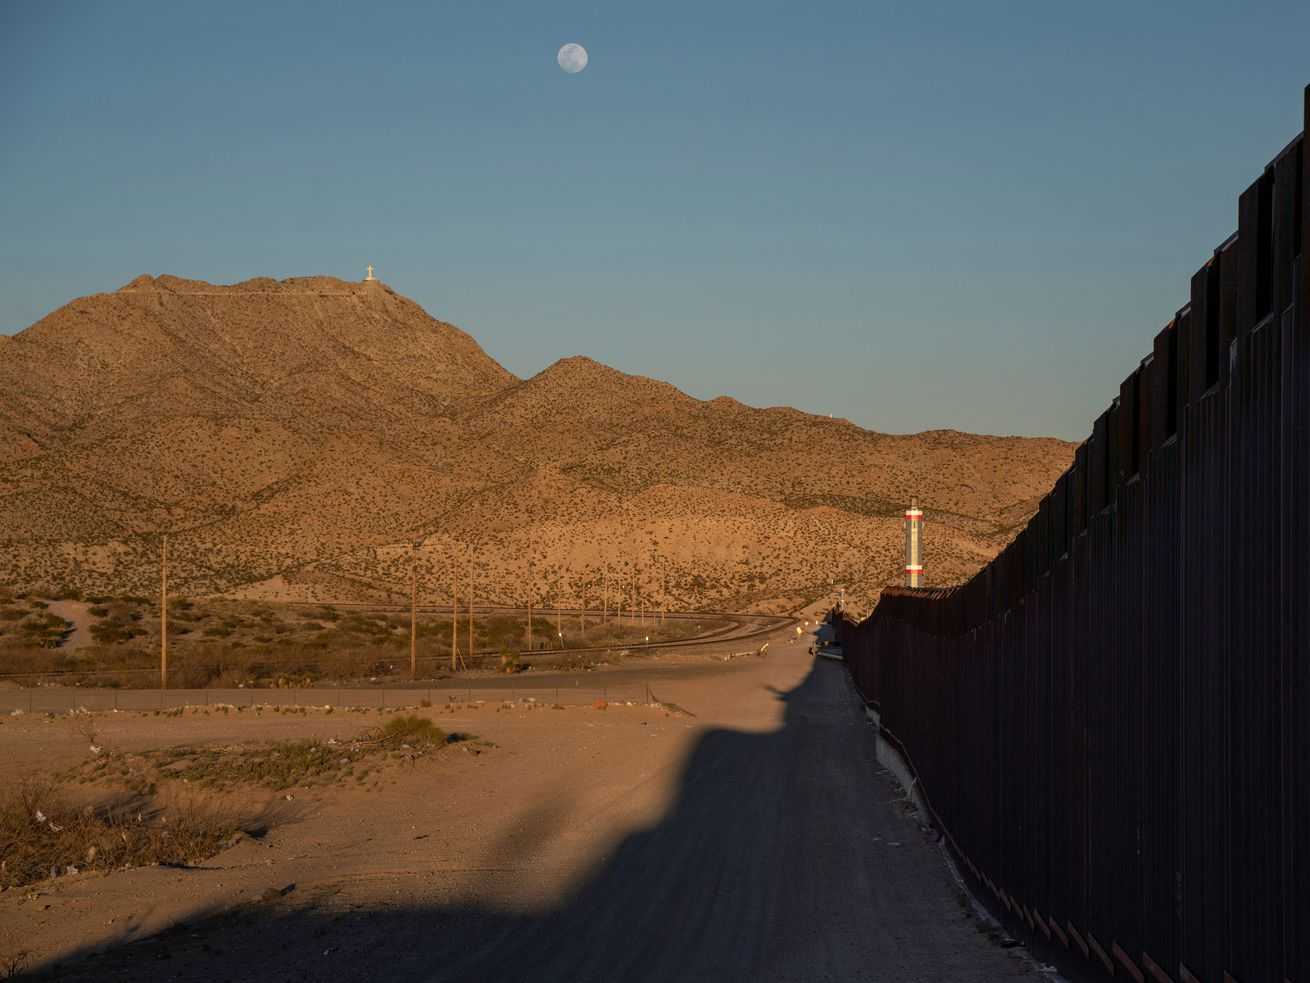 The US-Mexico border wall in New Mexico.